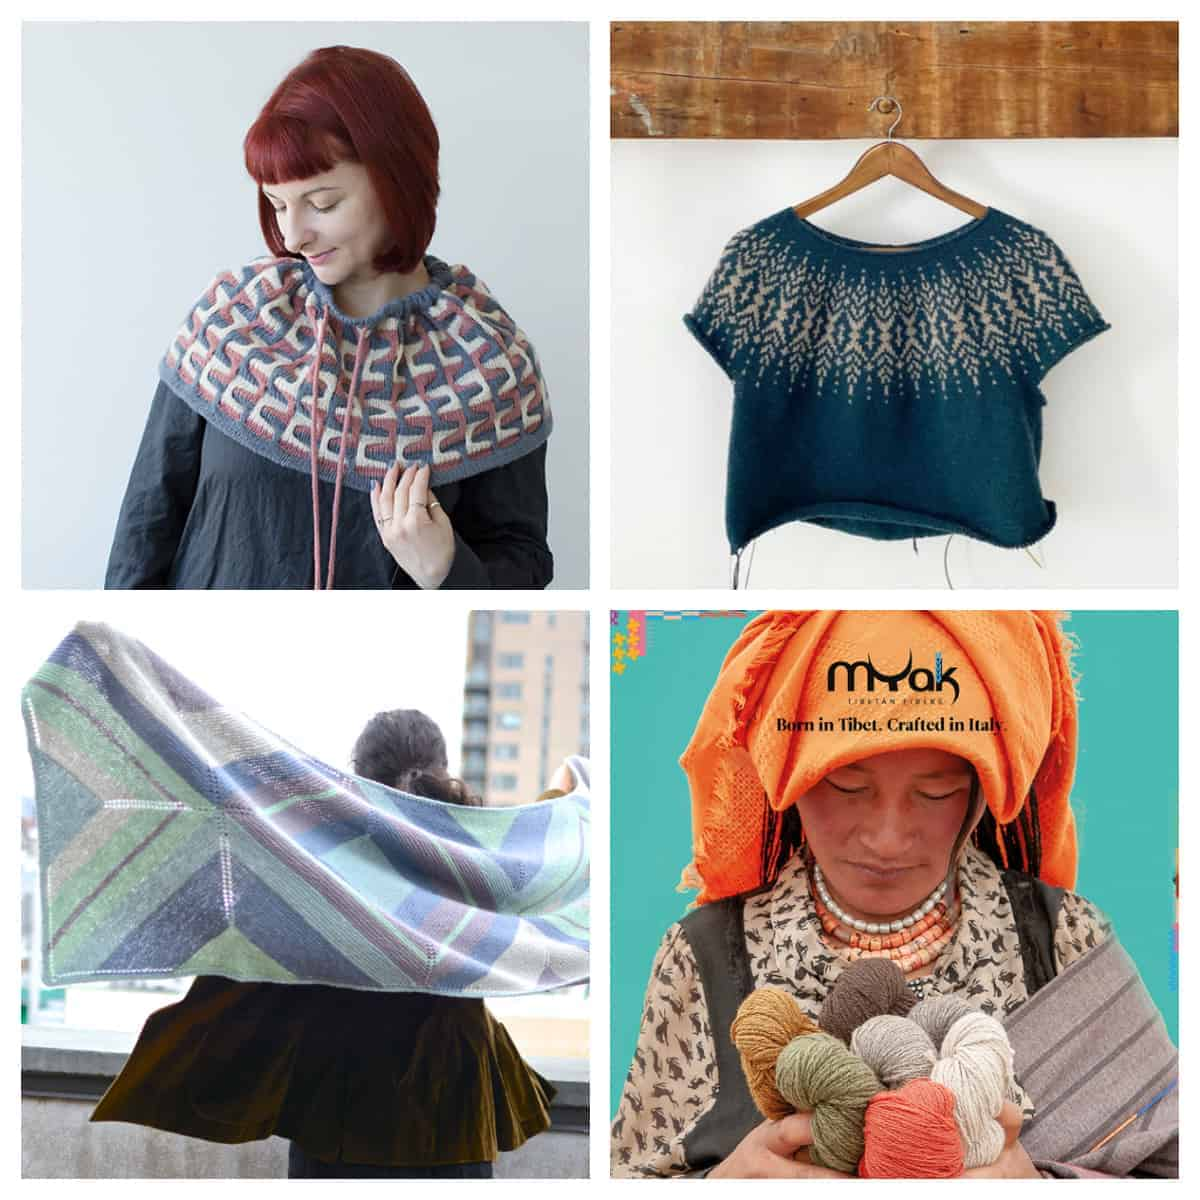 A selection of knitting patterns